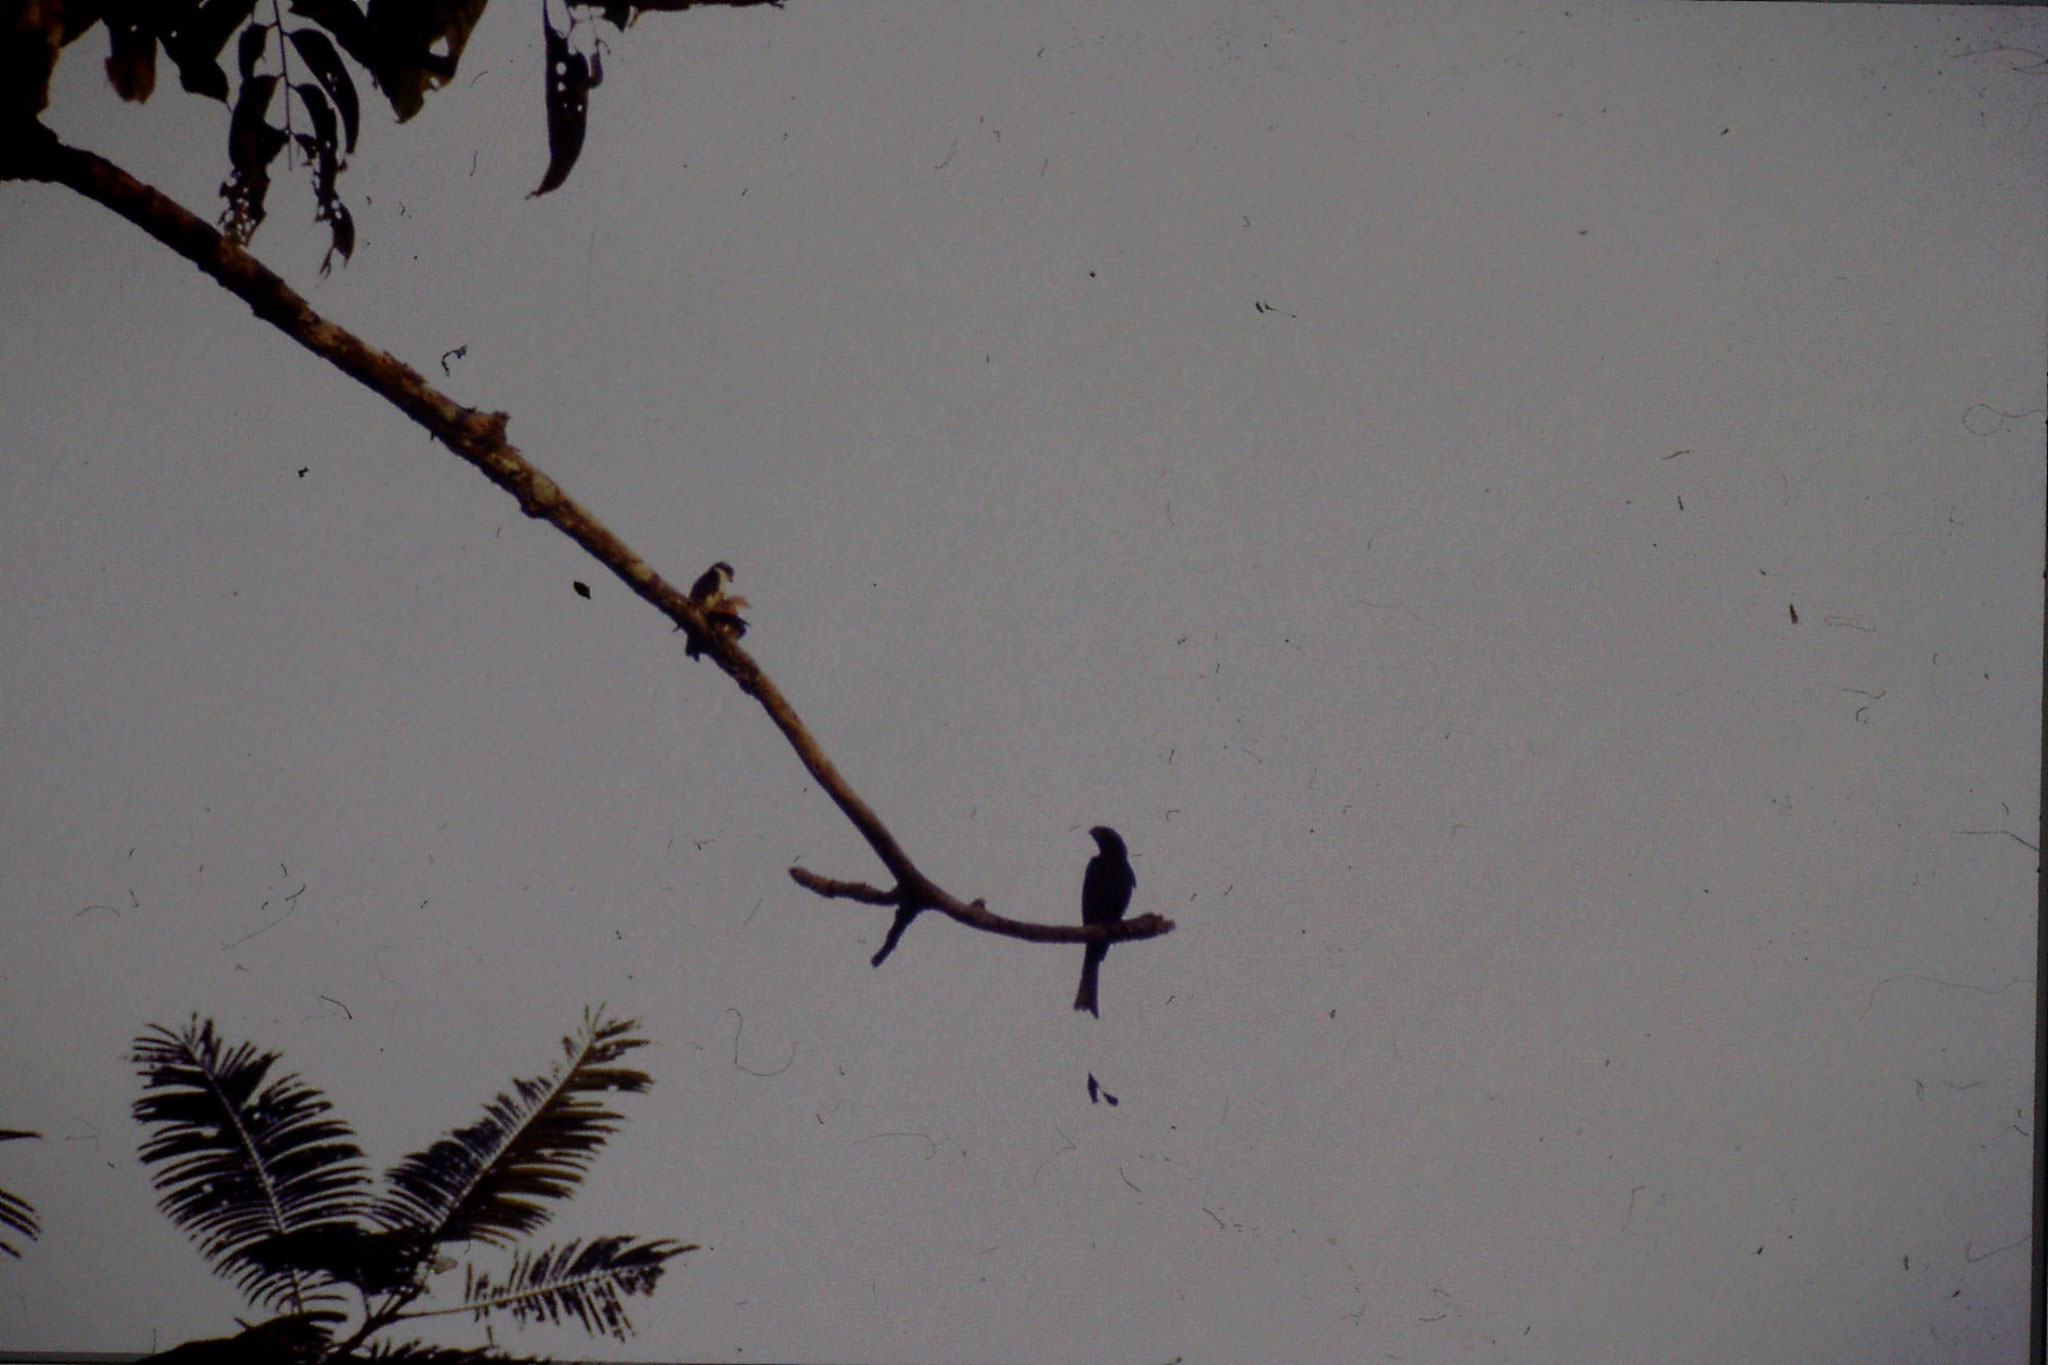 24/6/1990: 10: Tamen Negara Falconet and Racket tailed drongo